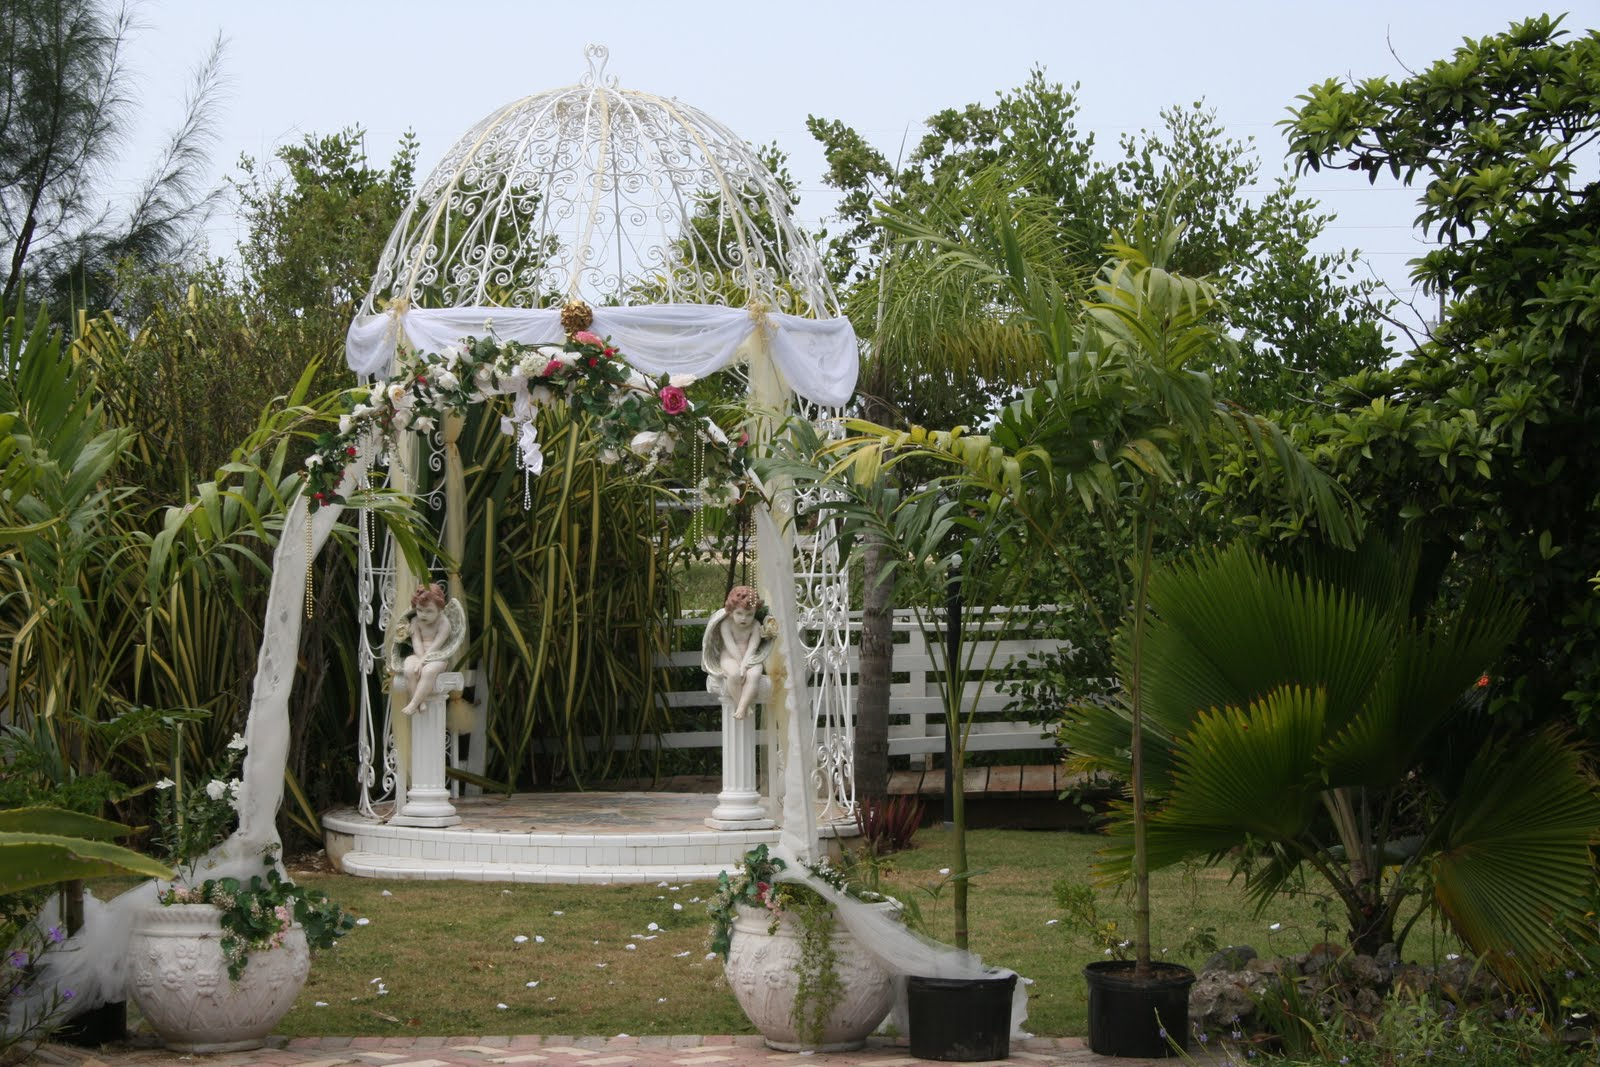 The Joy Of Weddings: Imagine Your Cayman Garden Wedding Here